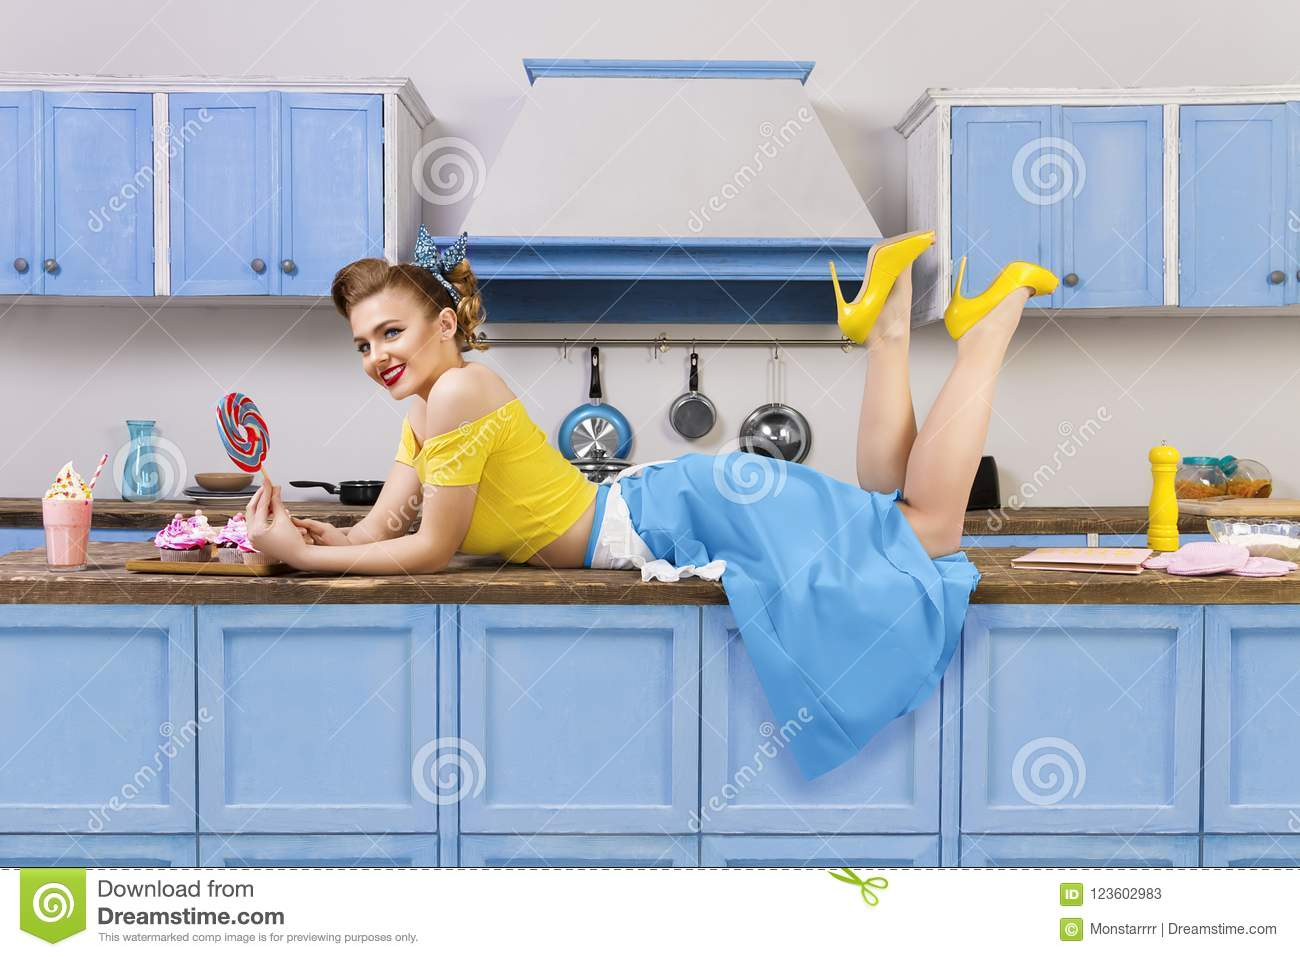 Retro pin up girl woman lying relaxing on kitchen